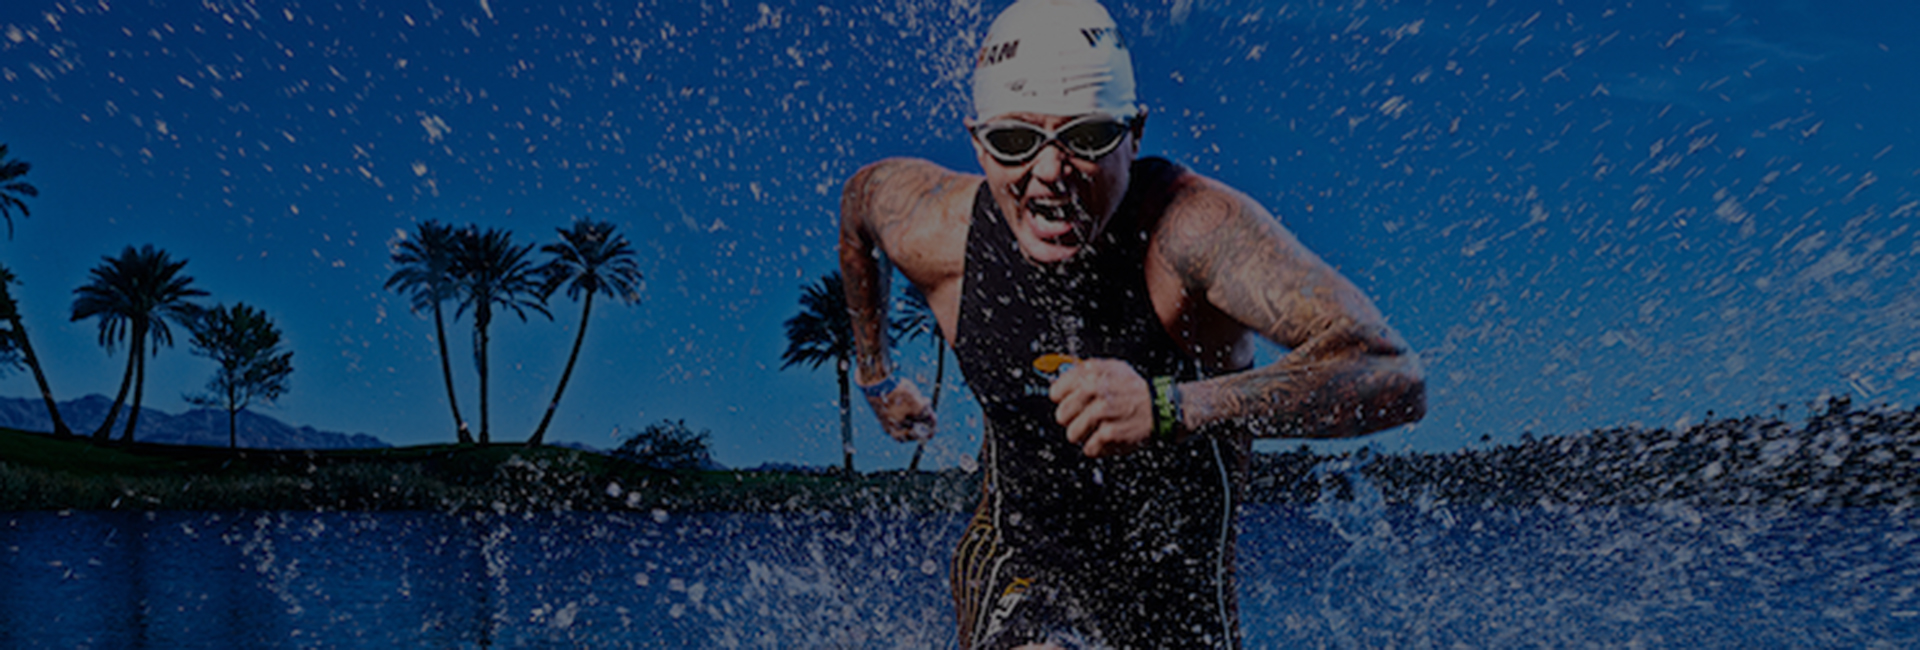 Ironman - Racing for Recovery